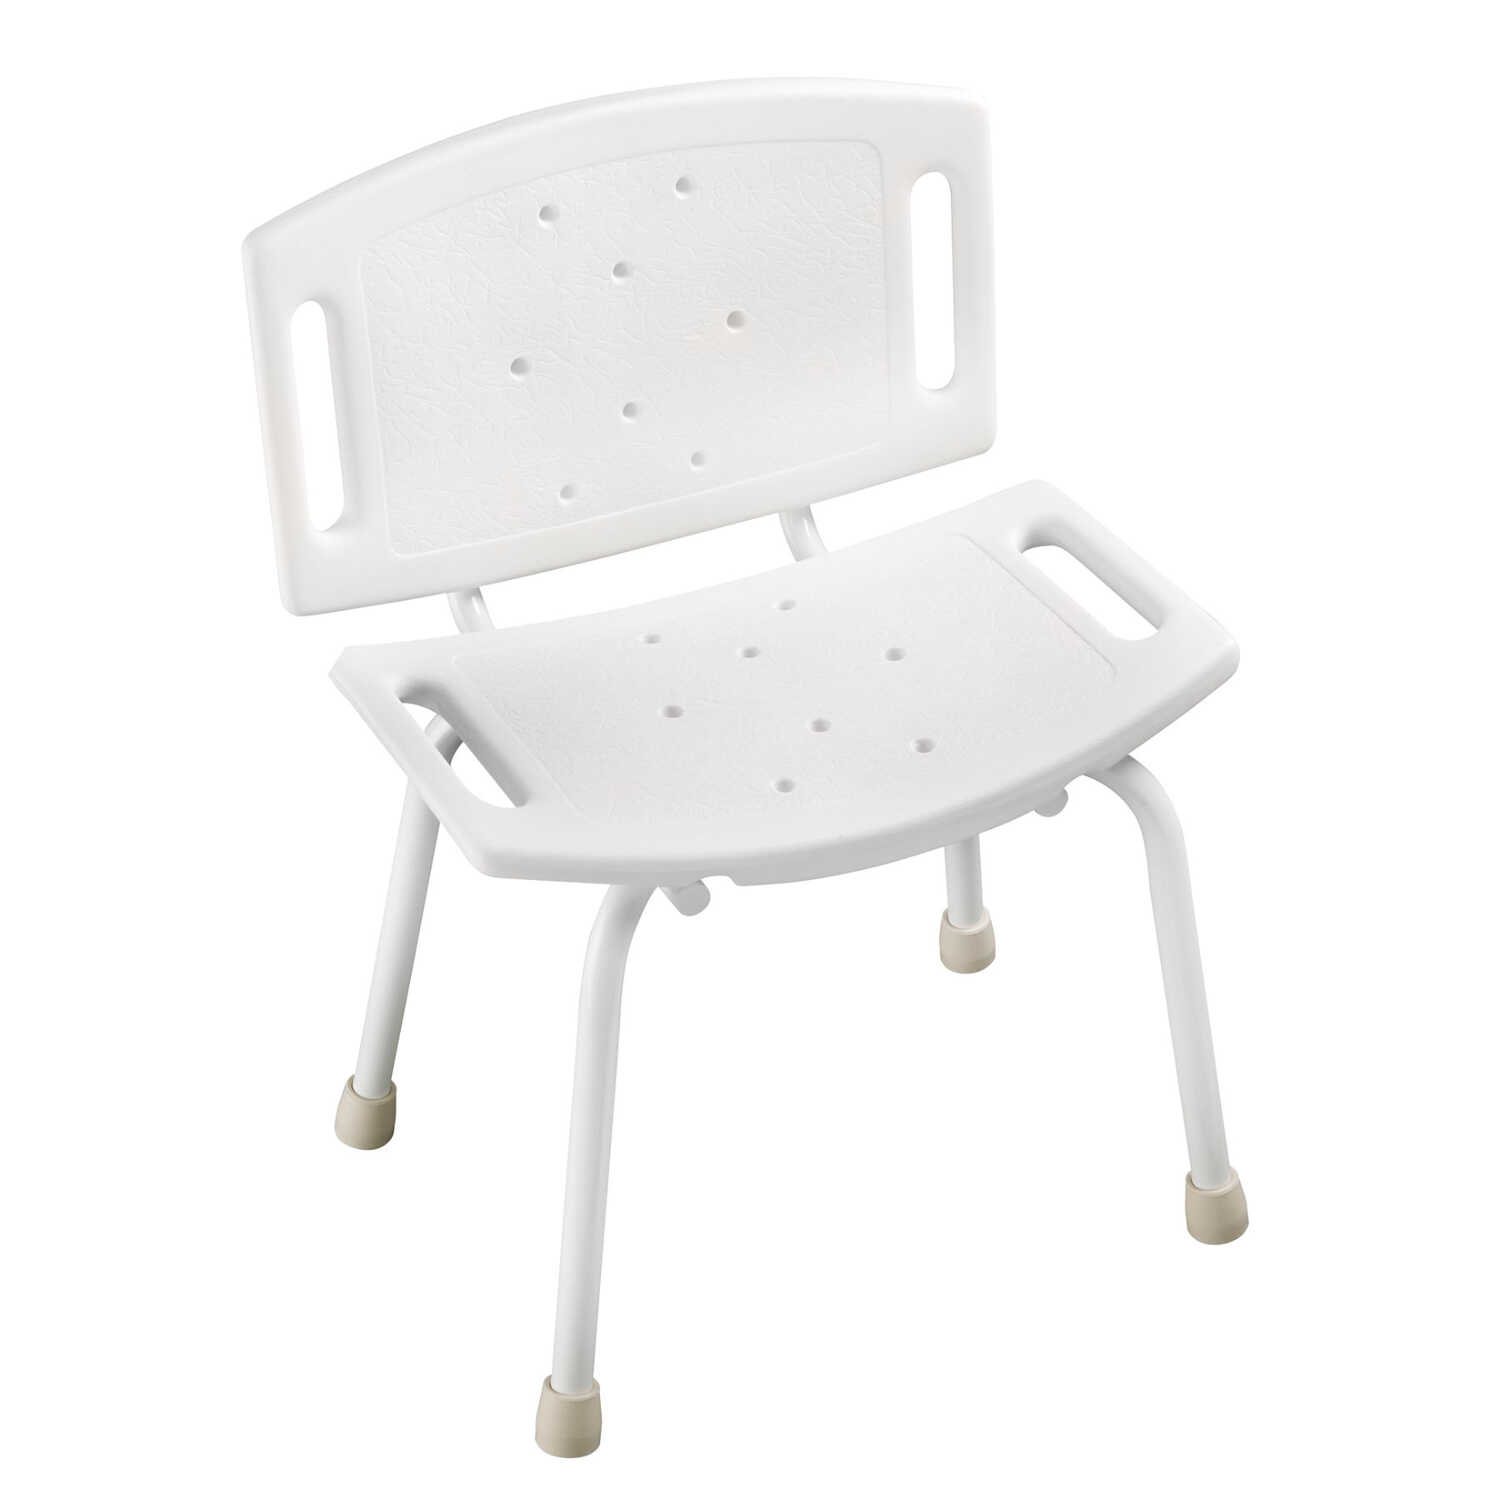 Delta  White  Tub and Shower Chair  Plastic  28-3/4 in. H x 11 in. L